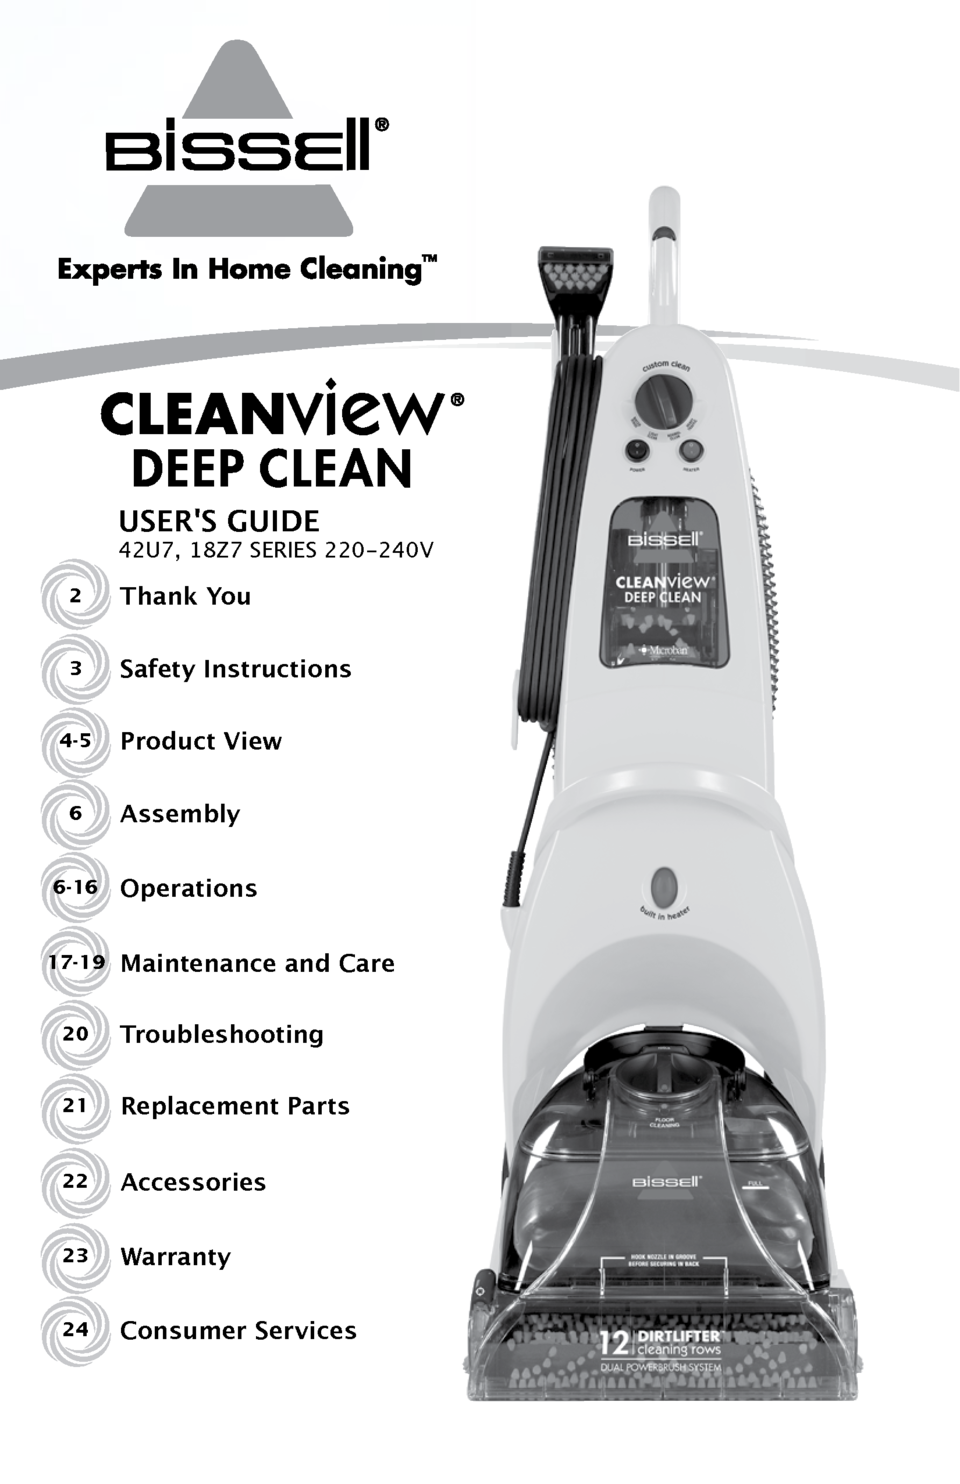 Bisell Cleanview Deep Clean Carpet Cleaner 18z7e User Manual